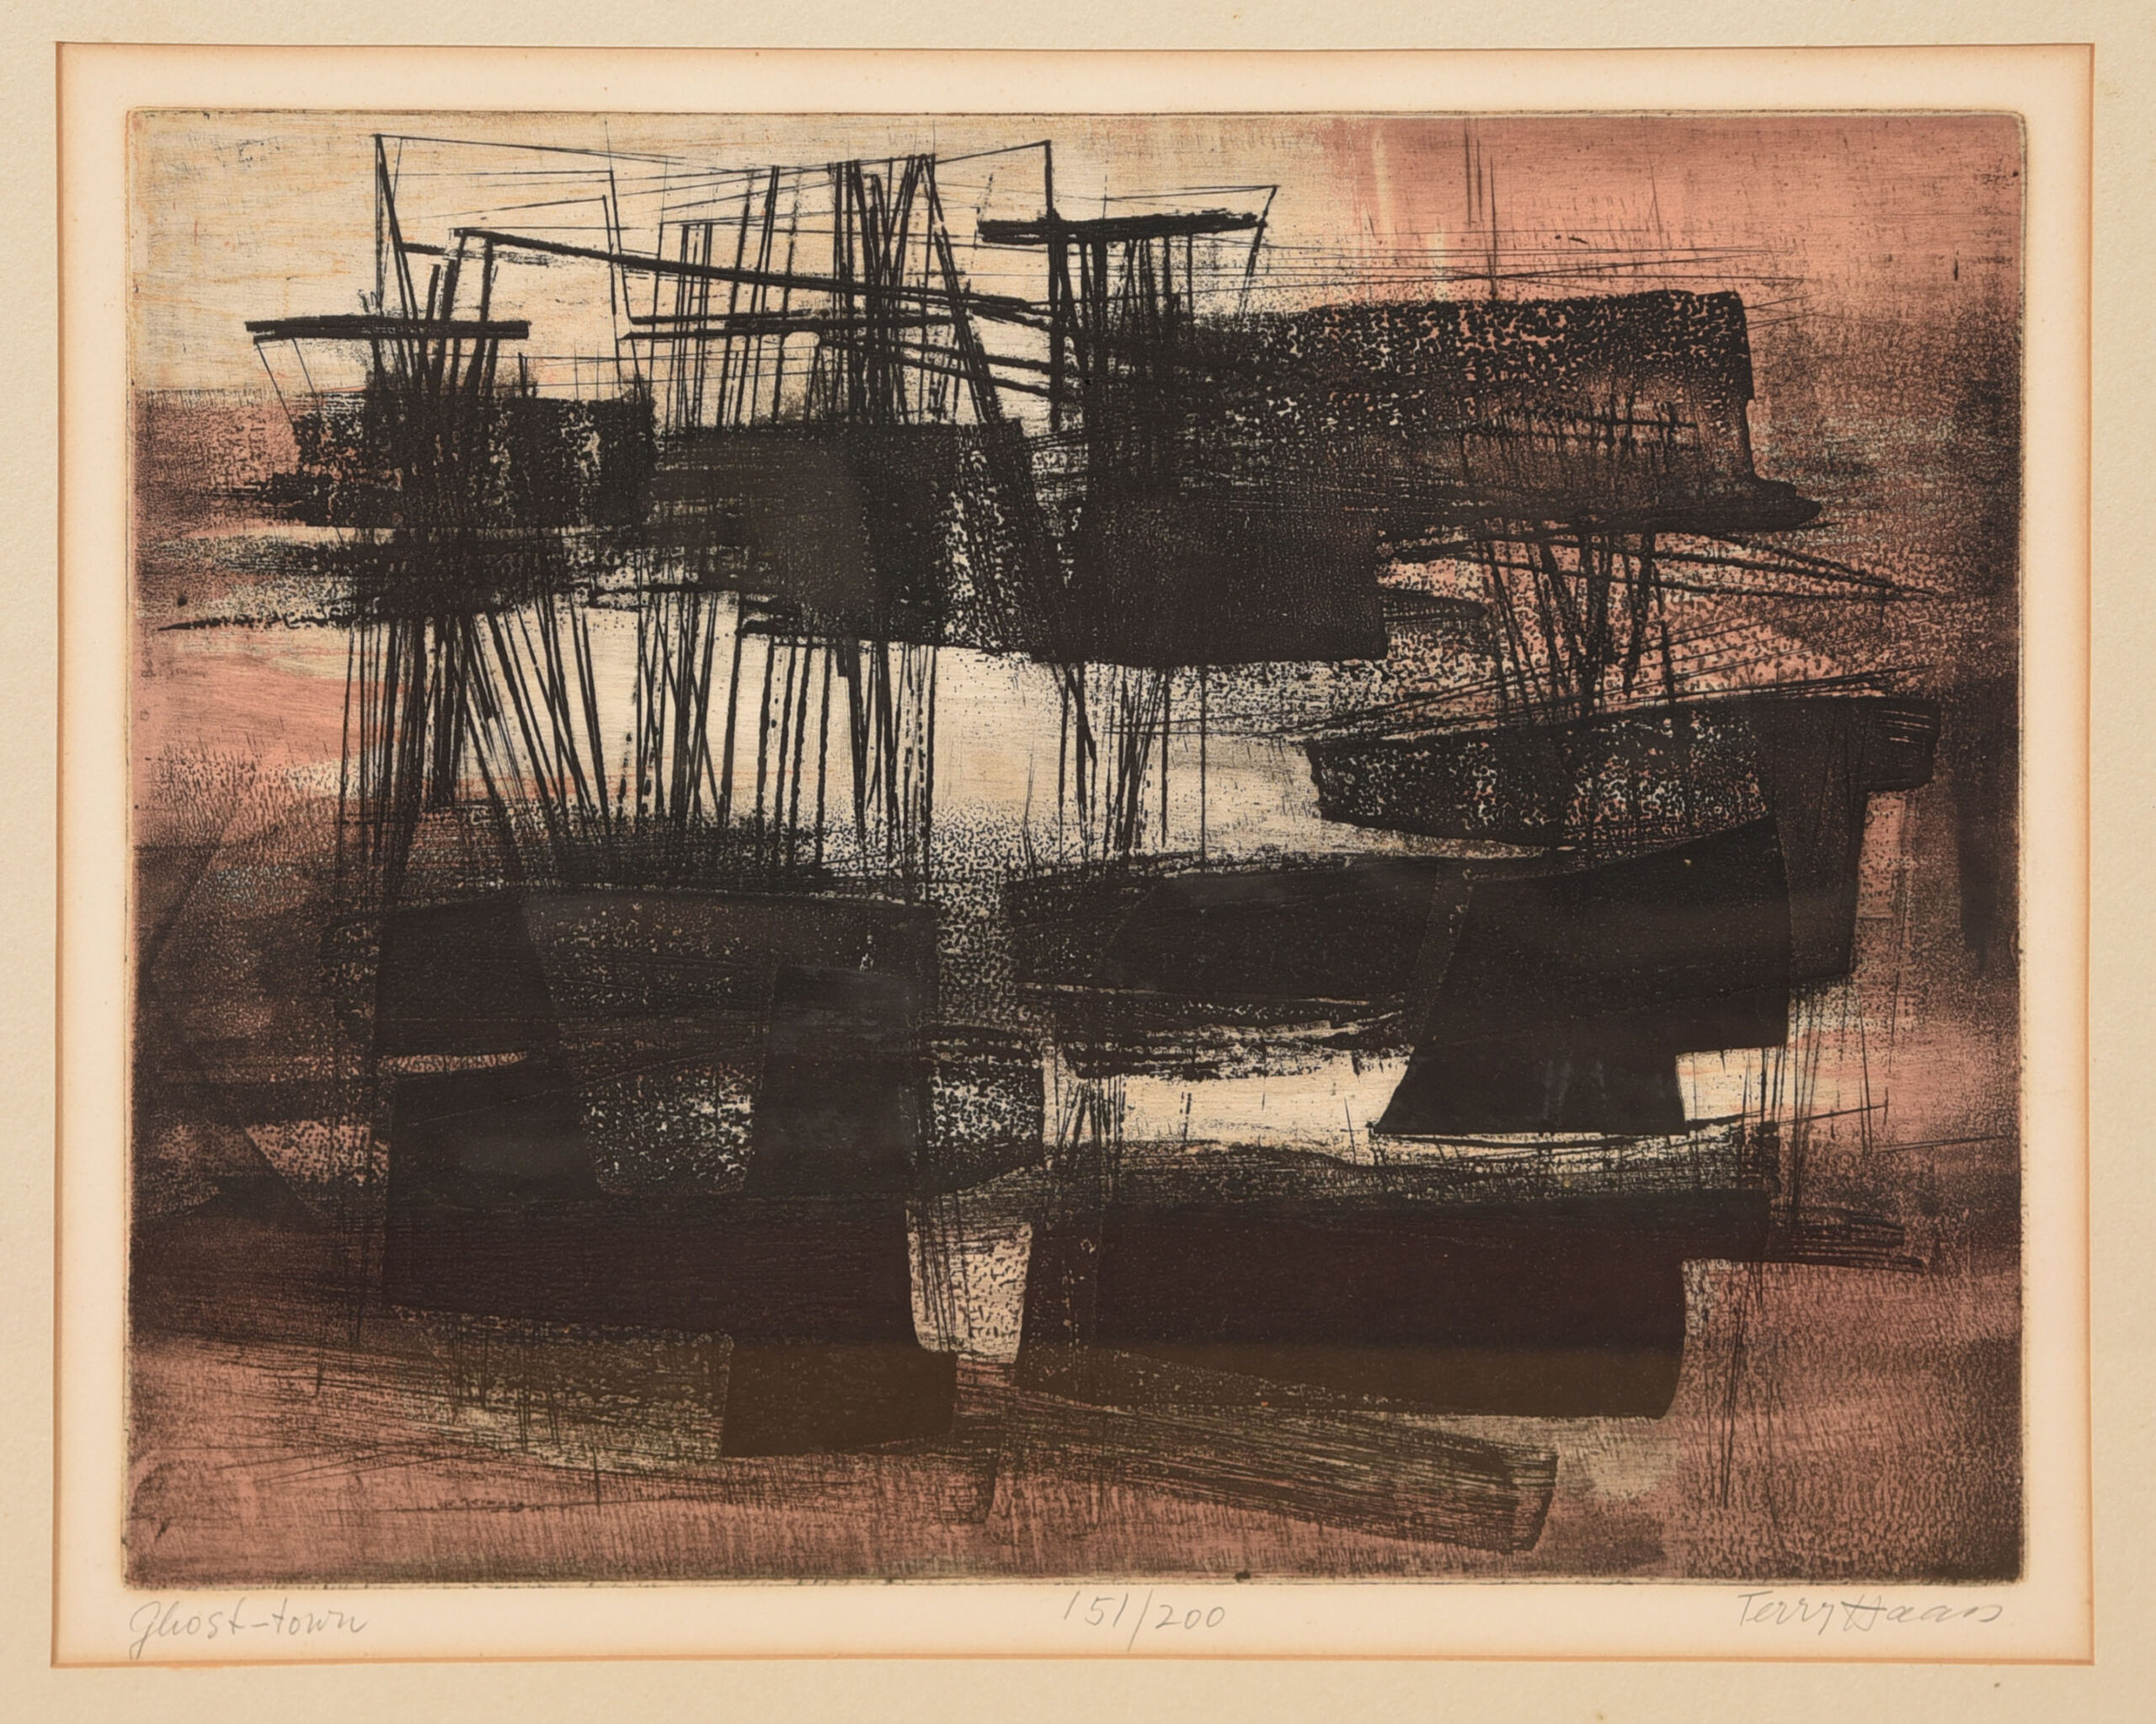 'Ghost Town' by Terry Haan, Deep Etching Abstract Artwork